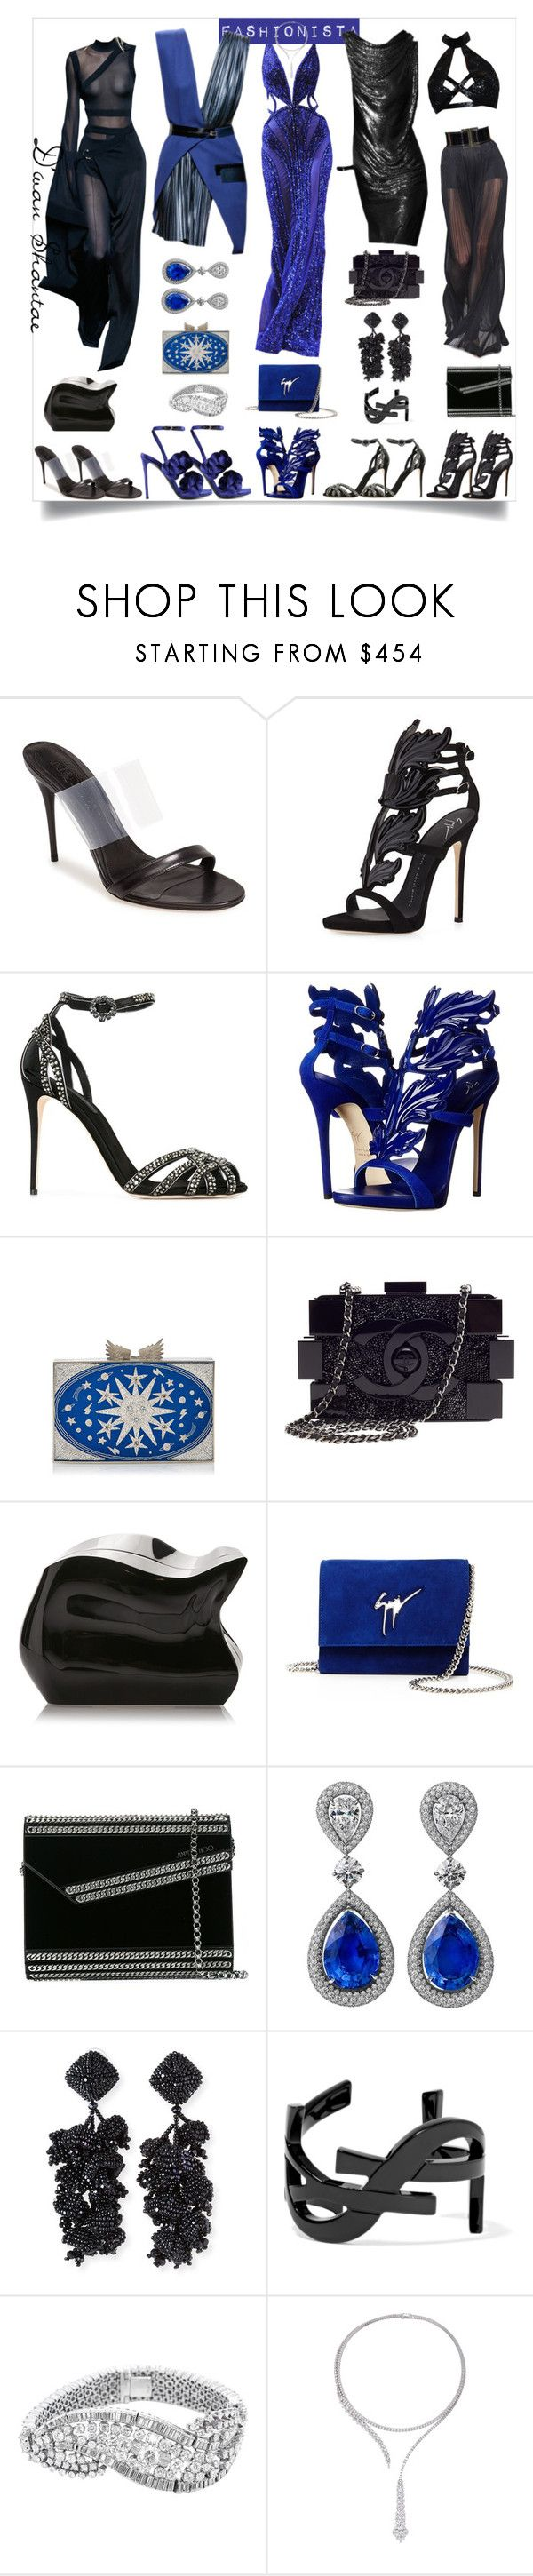 """""""Fashionista - She likes the finer things in life."""" by adswil ❤ liked on Polyvore featuring Alexander McQueen, Giuseppe Zanotti, Dolce&Gabbana, Rita von Hildebrand, Chanel, Jimmy Choo, NOIR Sachin + Babi, Yves Saint Laurent, Yeprem and Marco de Vincenzo"""